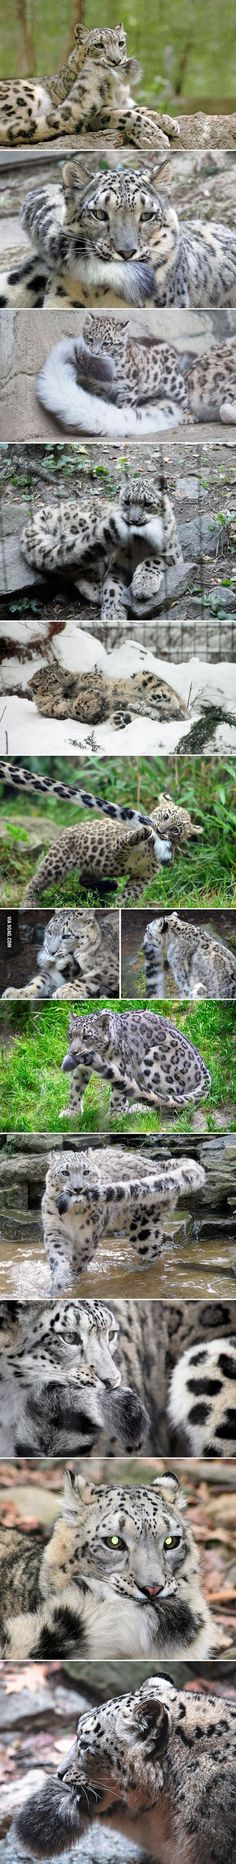 If you are having a bad day, just look at these pictures of snow leopards